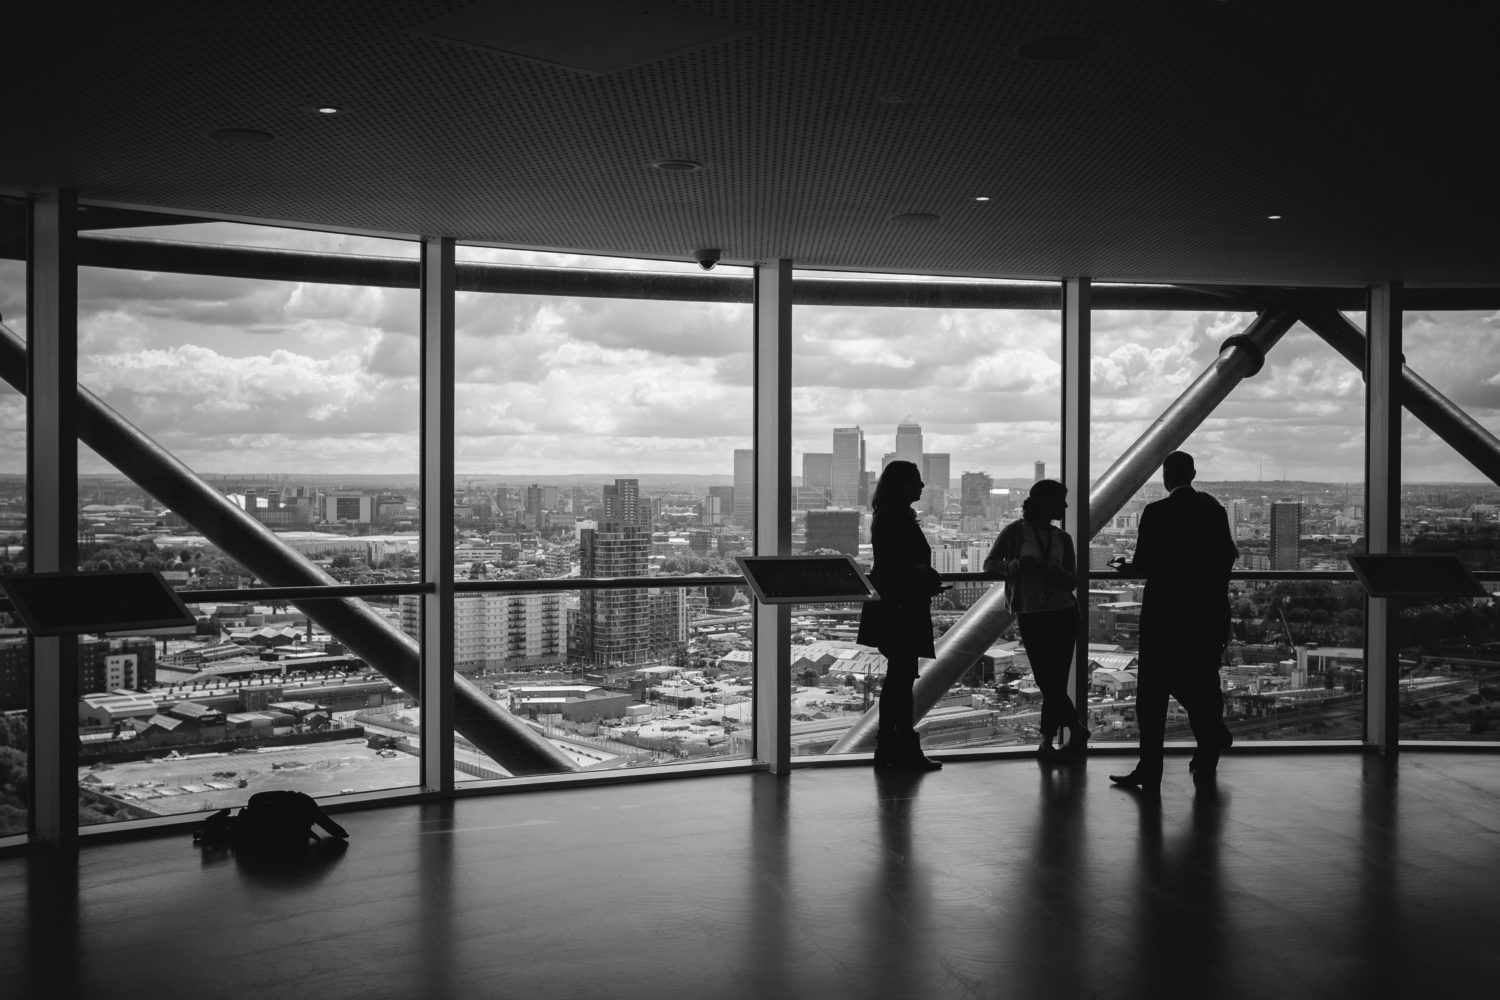 Things to Look For in Commercial Brokerage